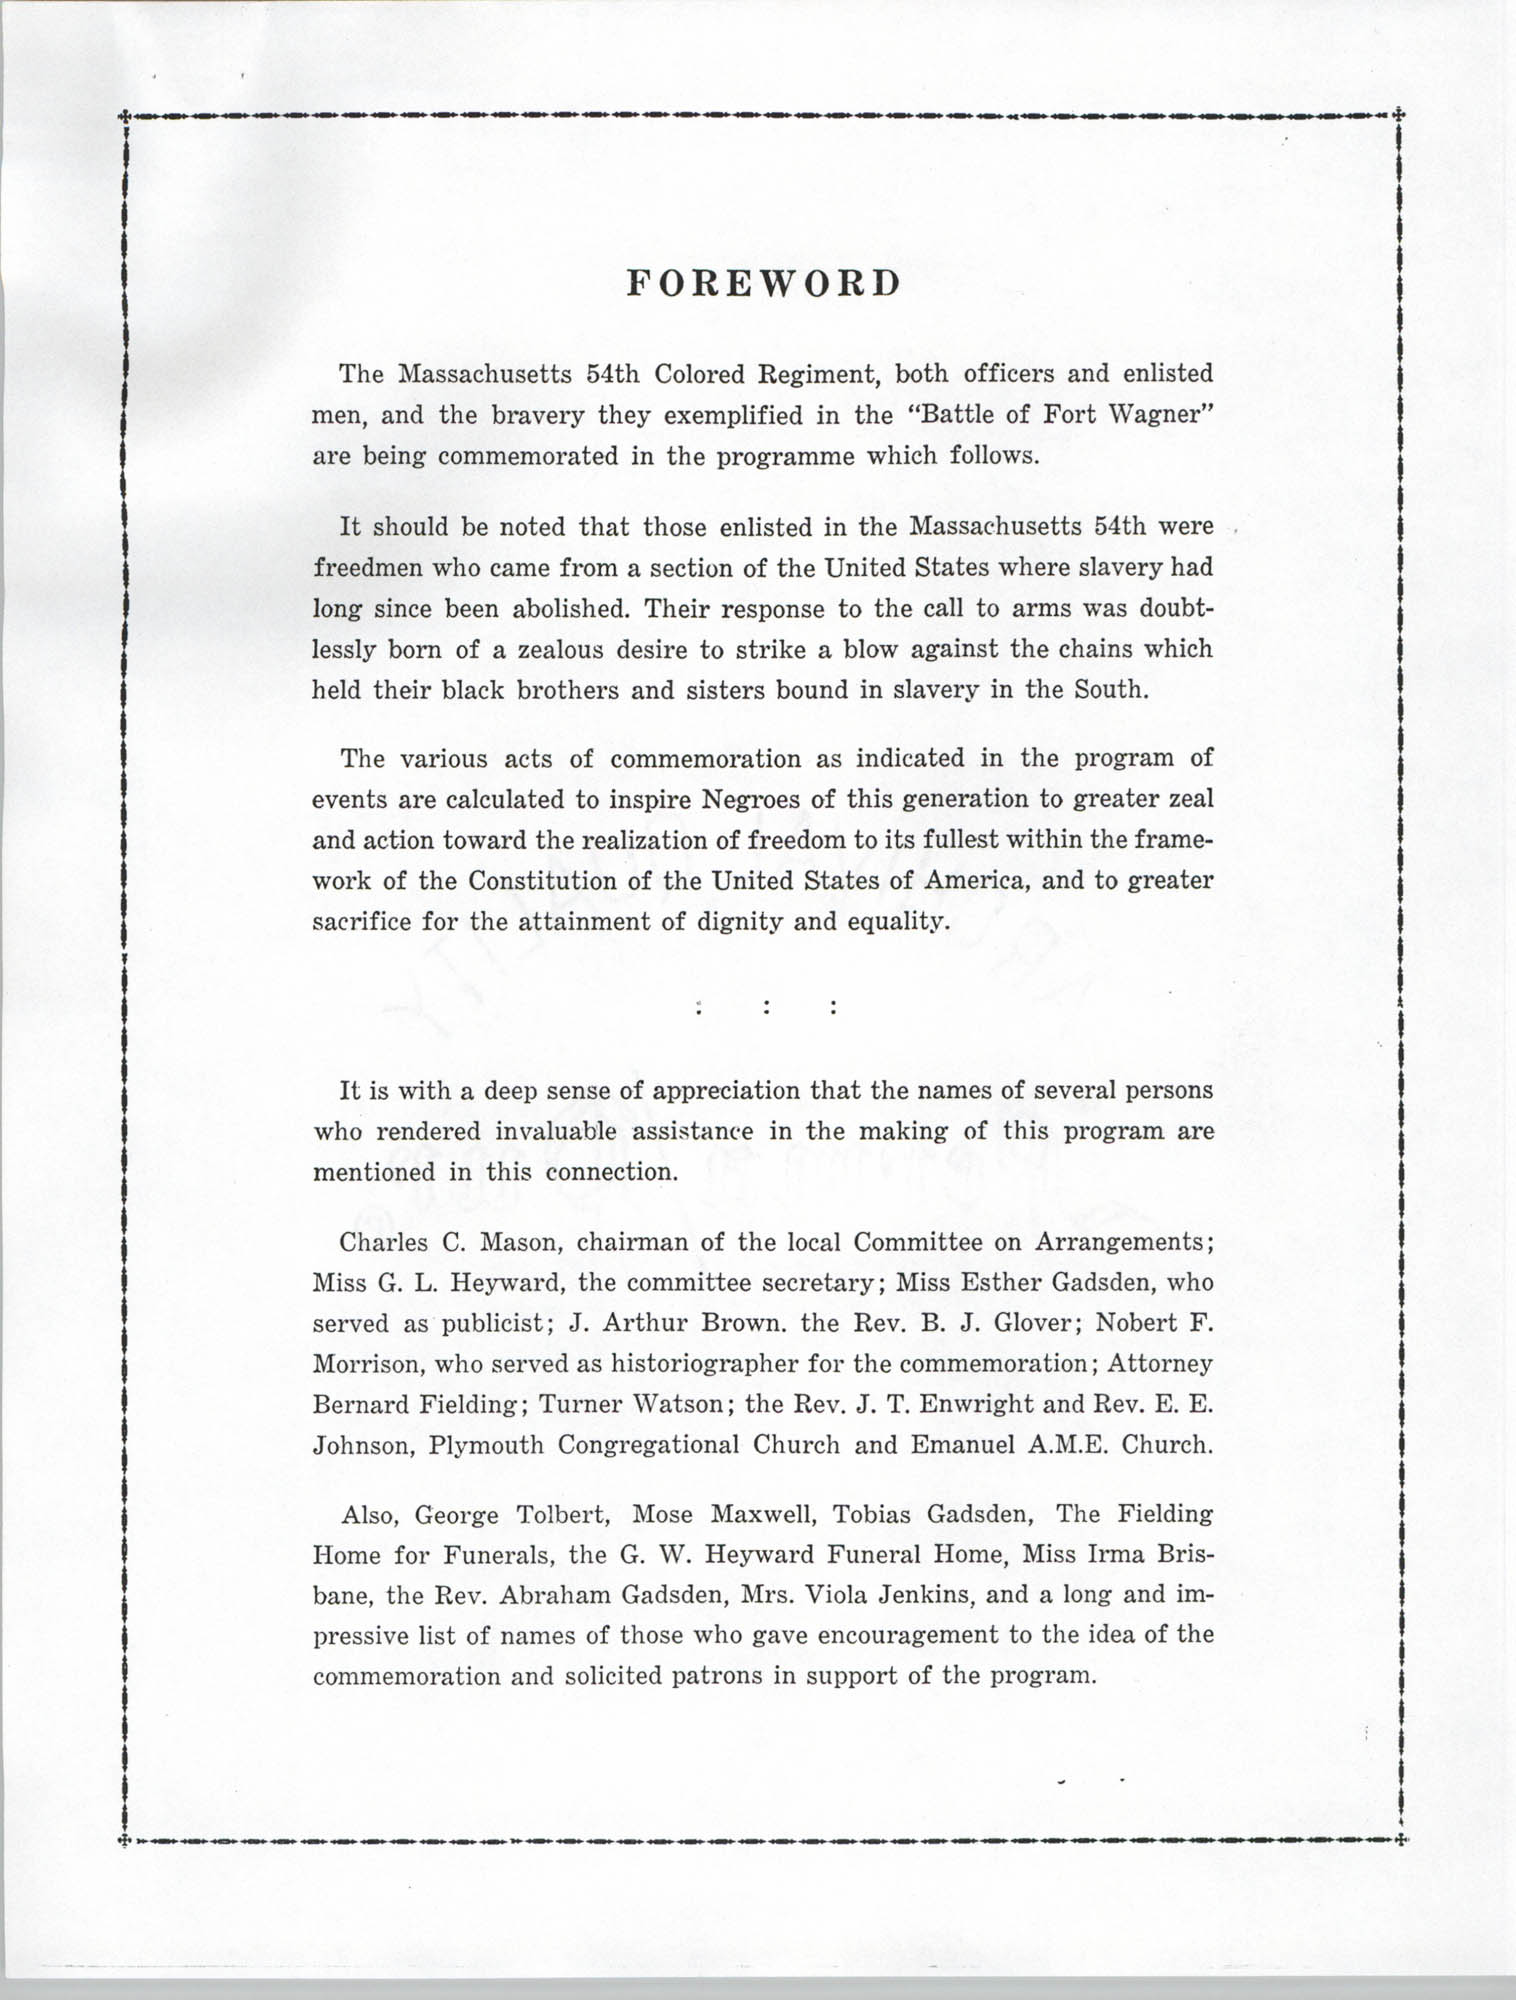 Ninety-Ninth Anniversary of the Battle of Fort Wagner Program, Page 2